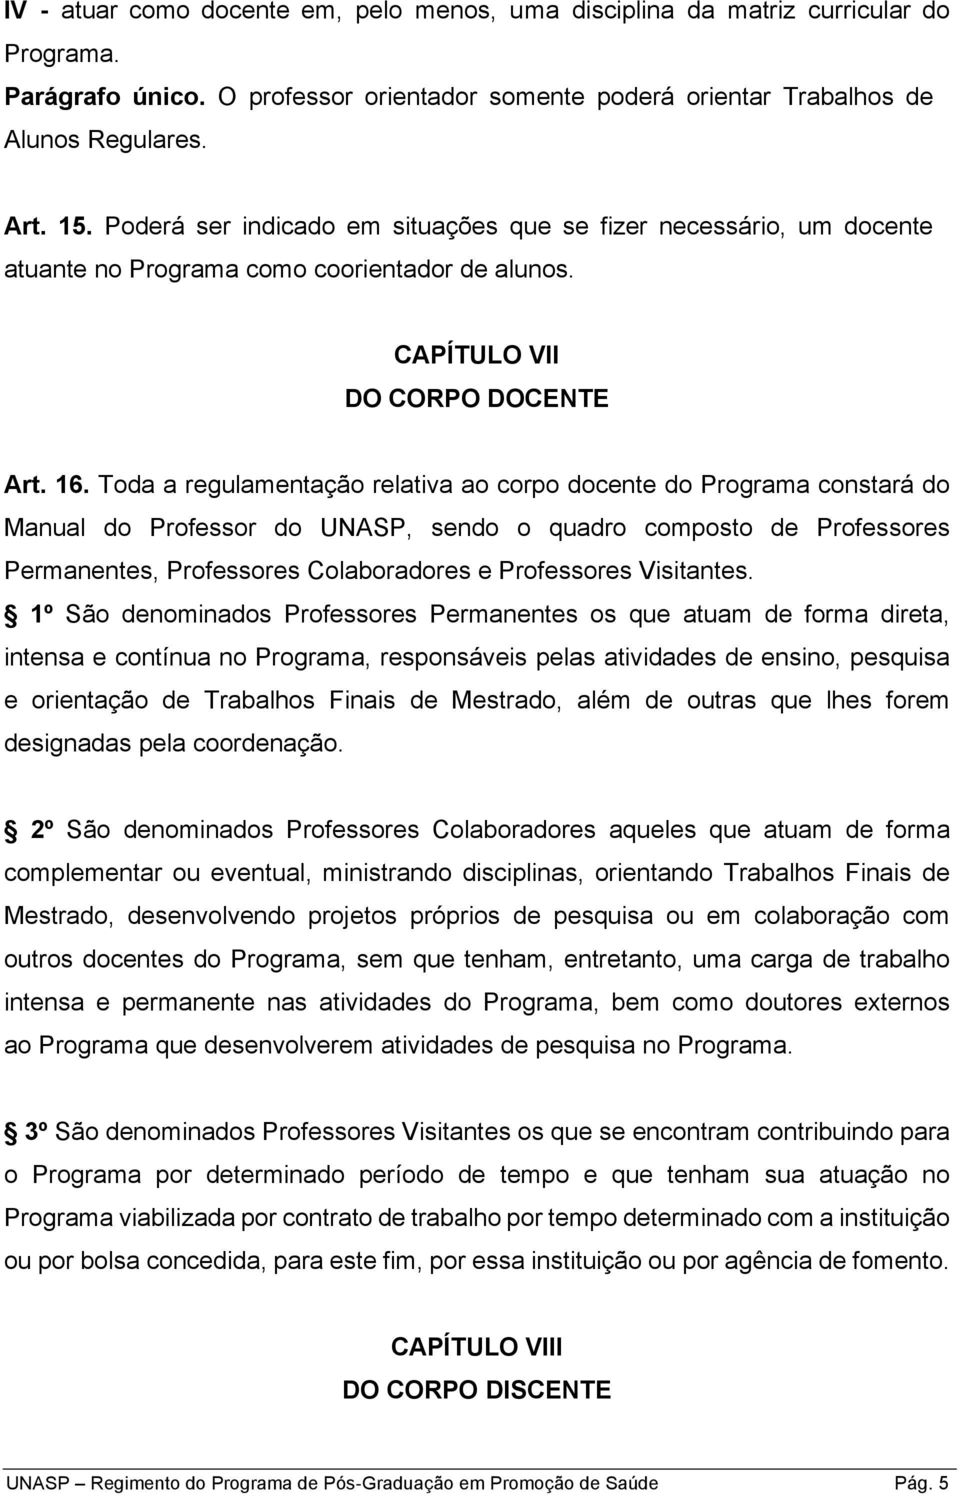 Toda a regulamentação relativa ao corpo docente do Programa constará do Manual do Professor do UNASP, sendo o quadro composto de Professores Permanentes, Professores Colaboradores e Professores